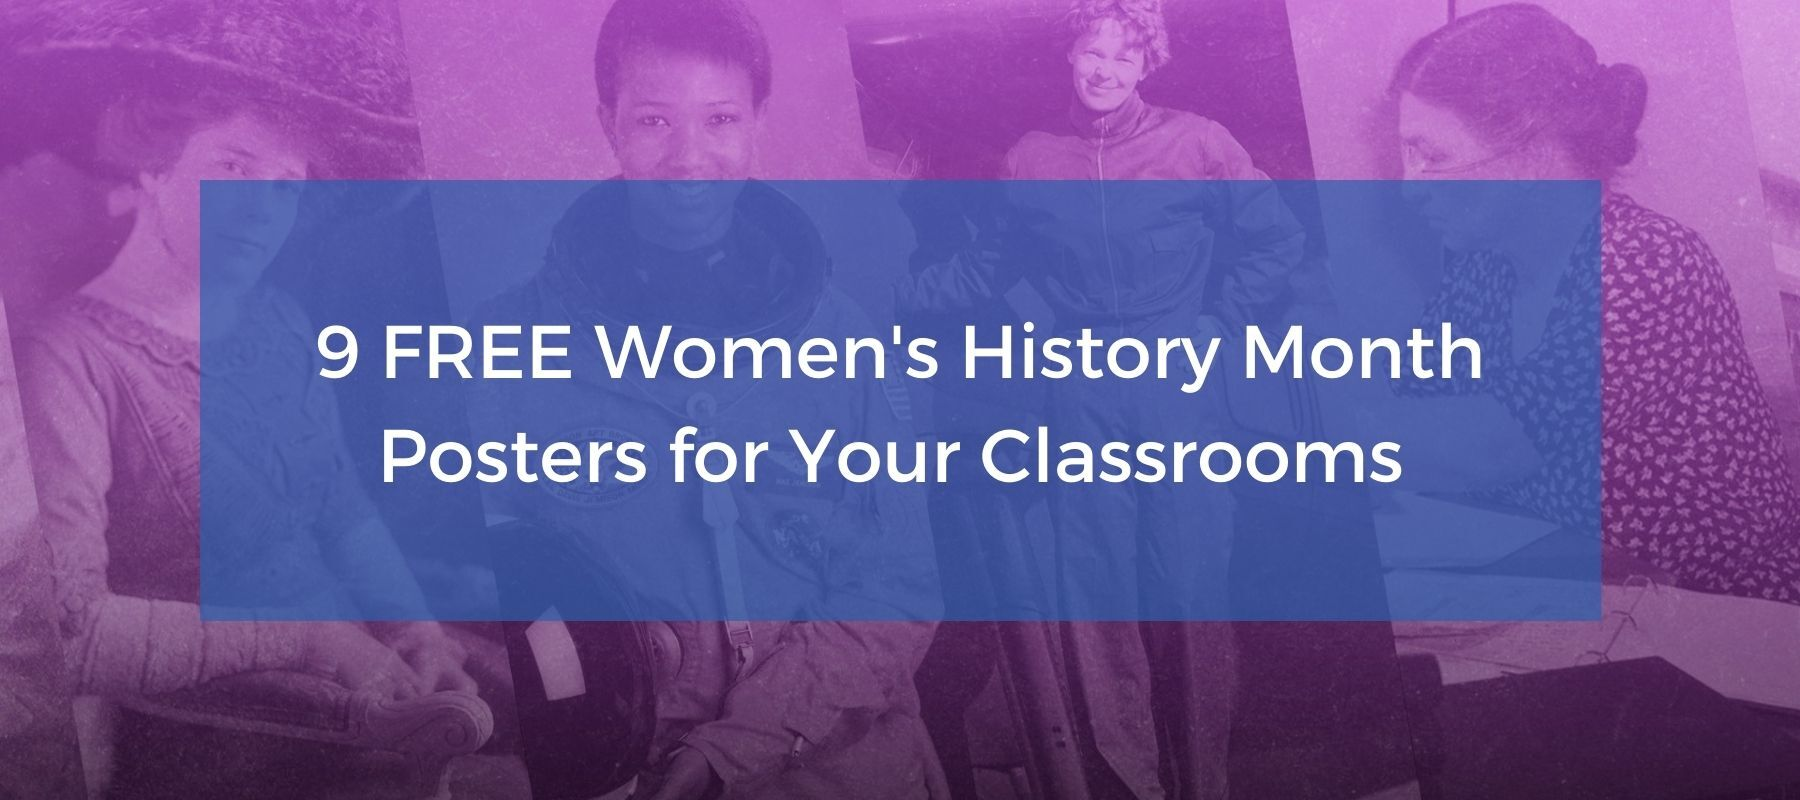 9 free women s history month posters